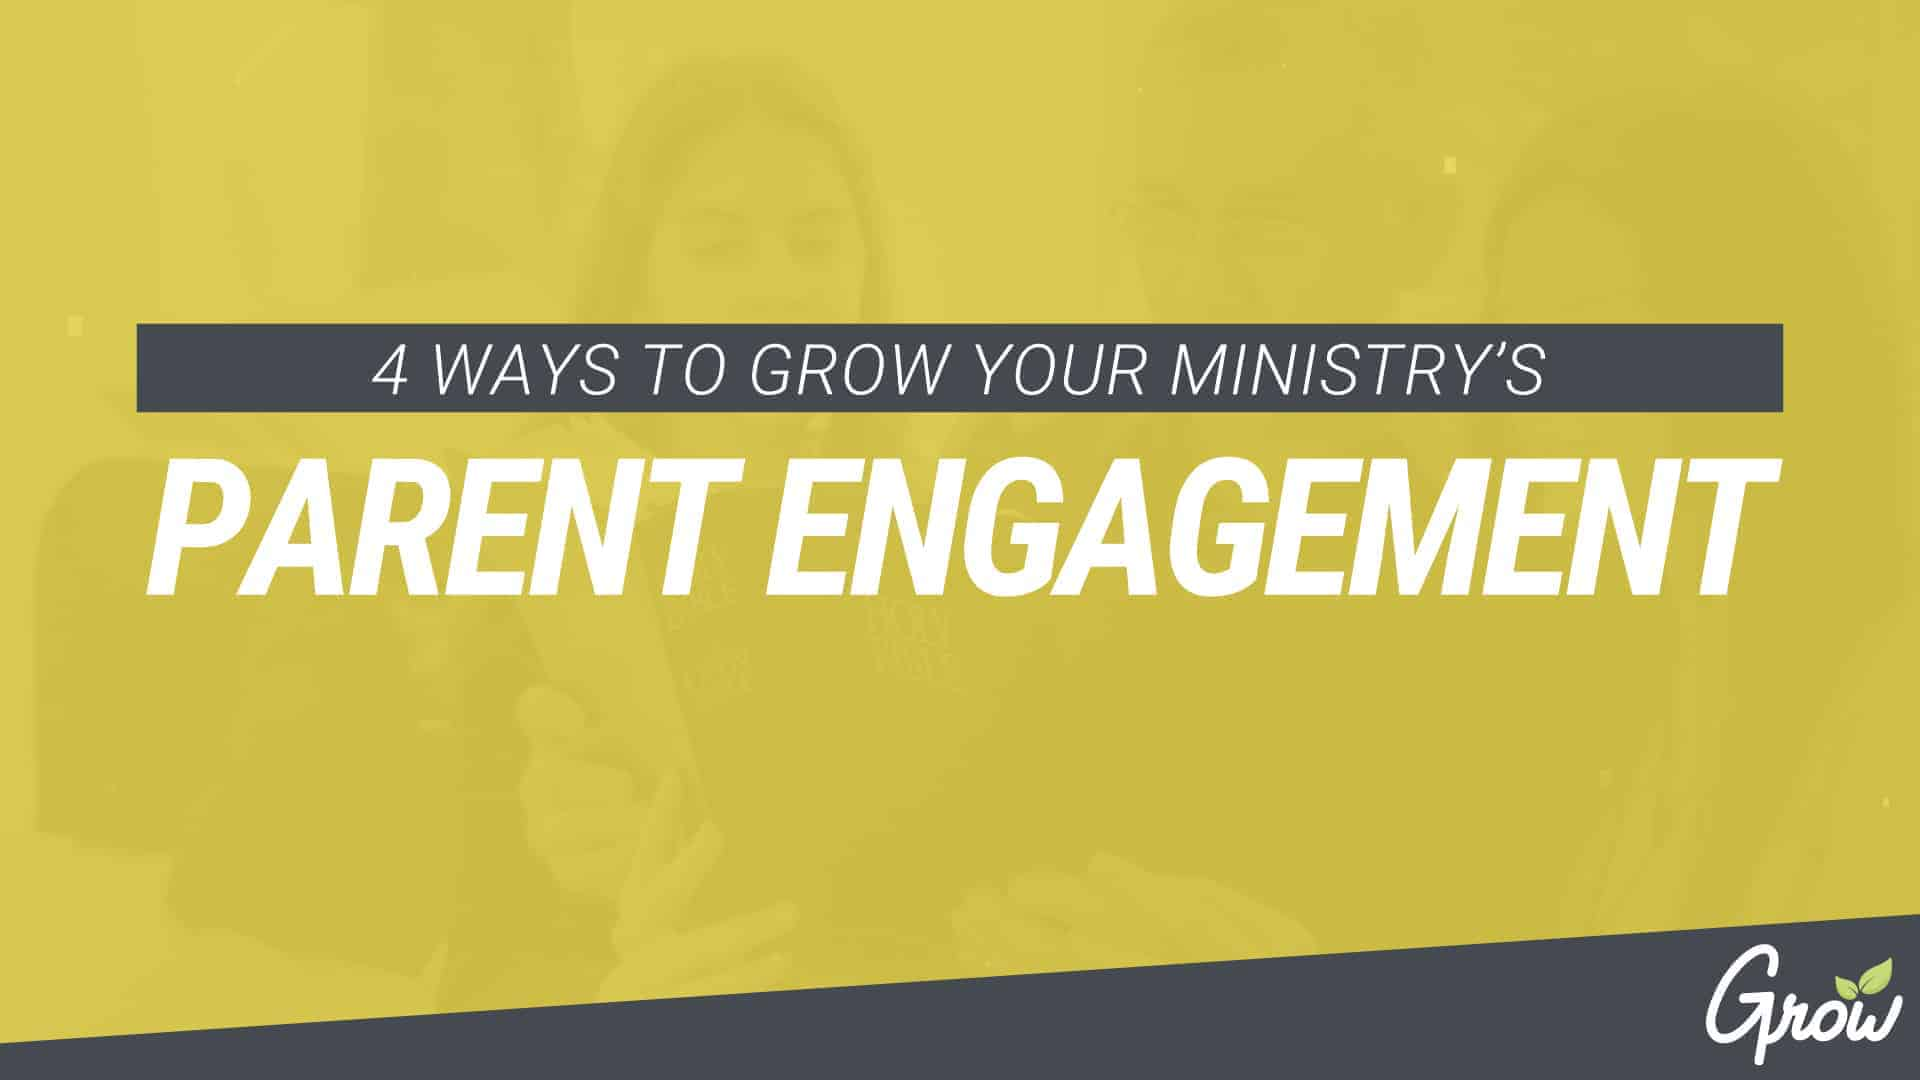 4 WAYS TO GROW YOUR MINISTRY'S PARENT ENGAGEMENT